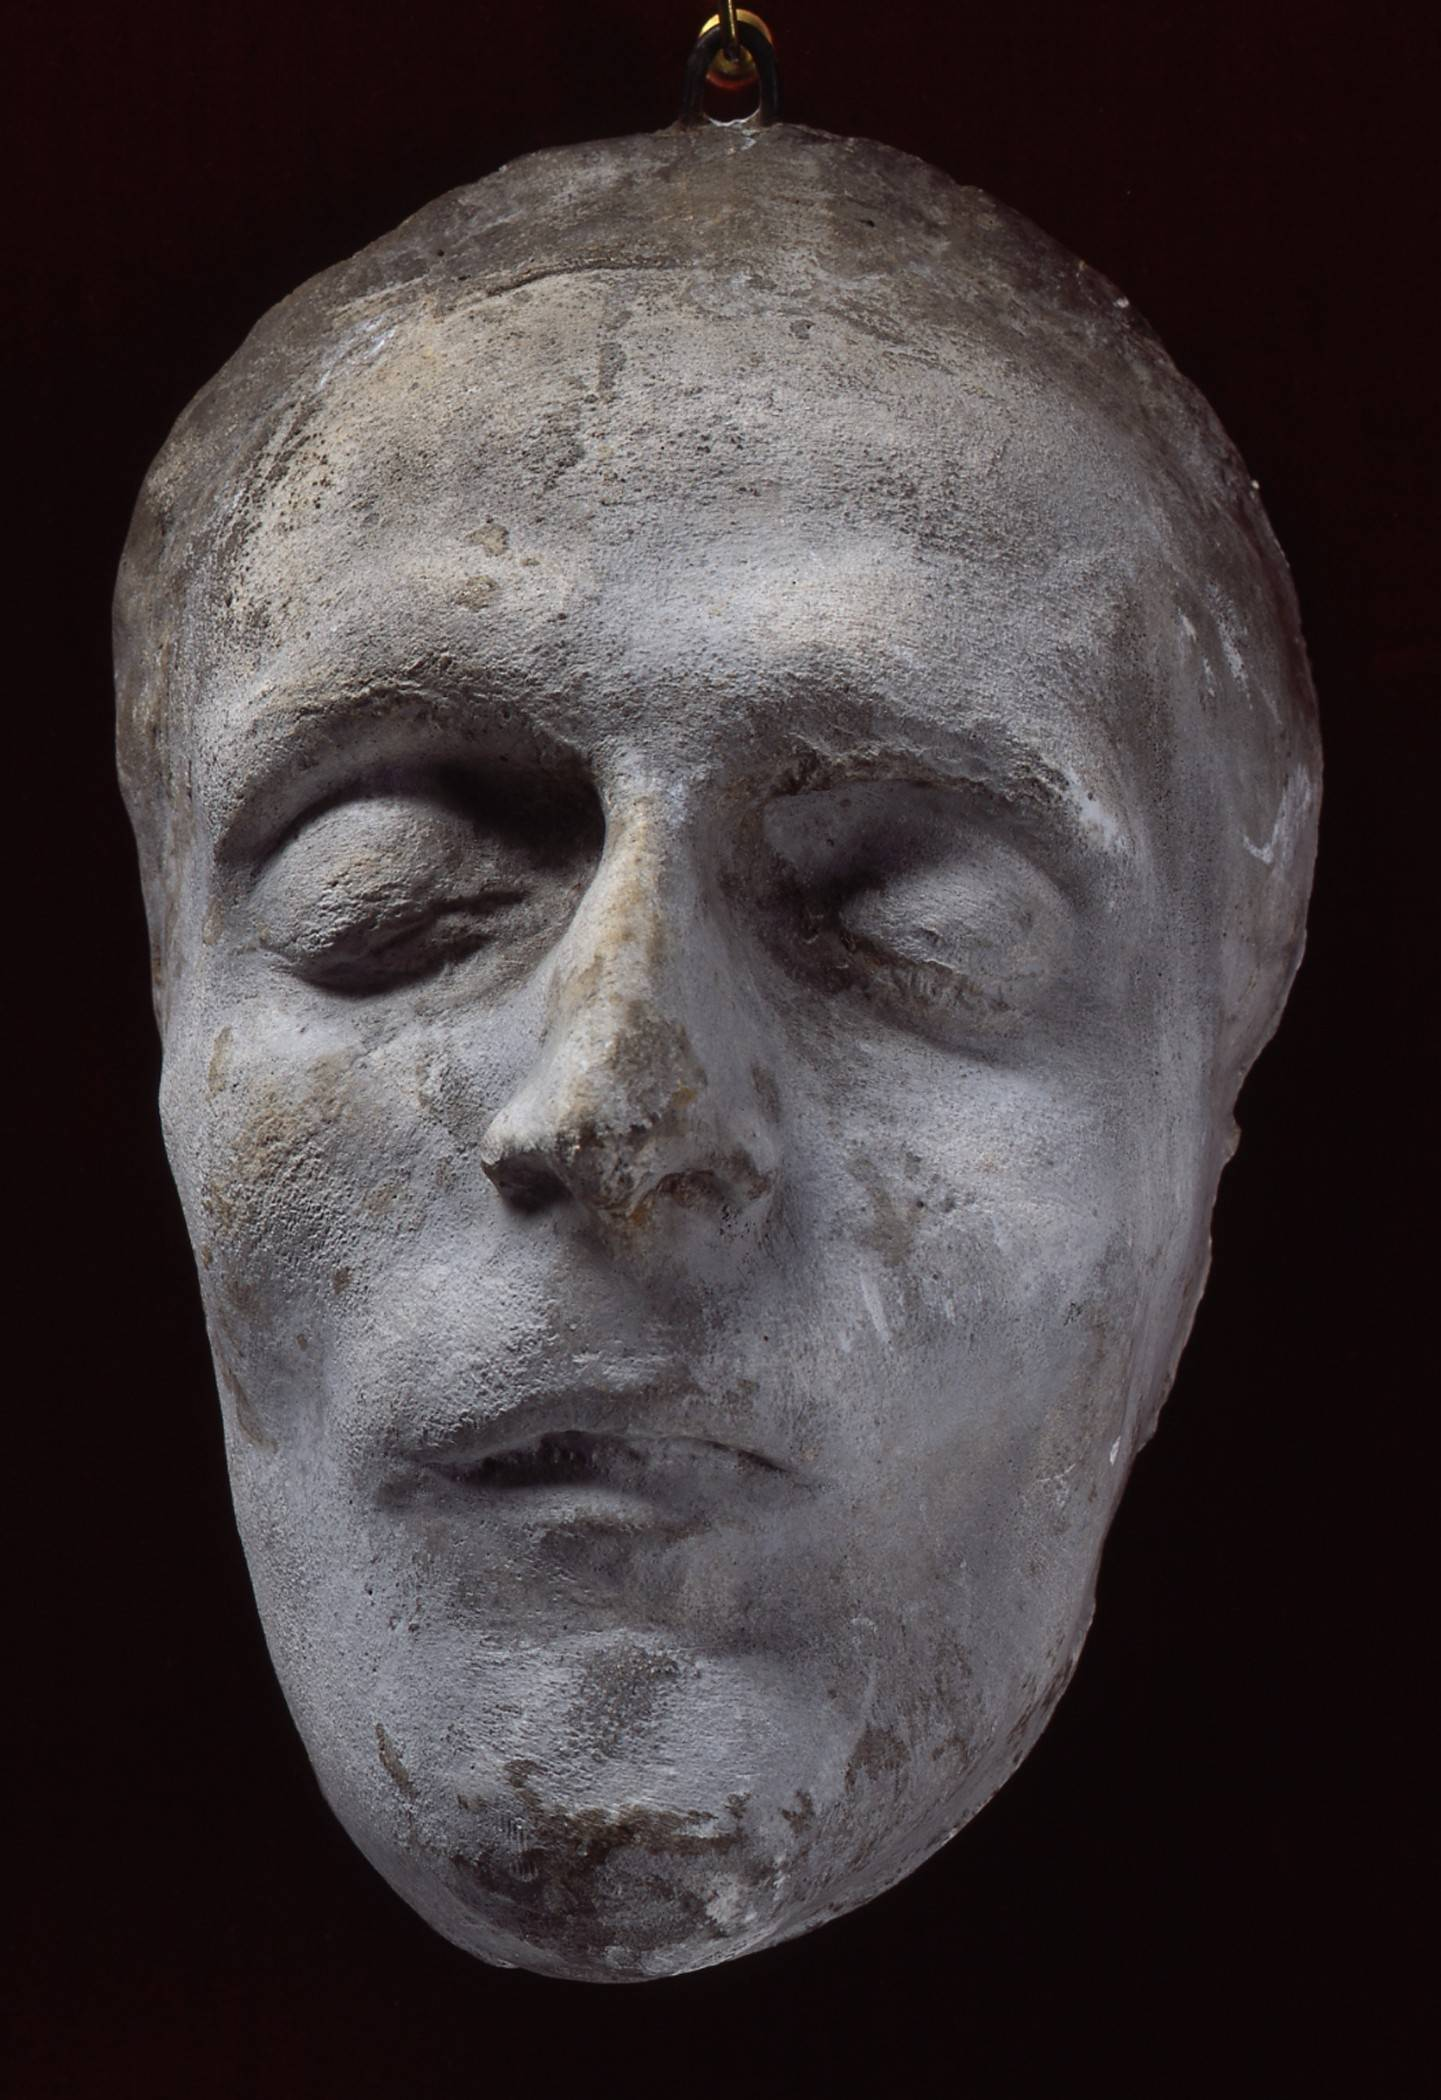 See Death Mask of Modigliani, 1920, by Jacques Lipchitz at The University of Chicago's Smart Museum of Art, as part of the new exhibit Imaging/Imagining the Human Body in Anatomical Representation through June 20.